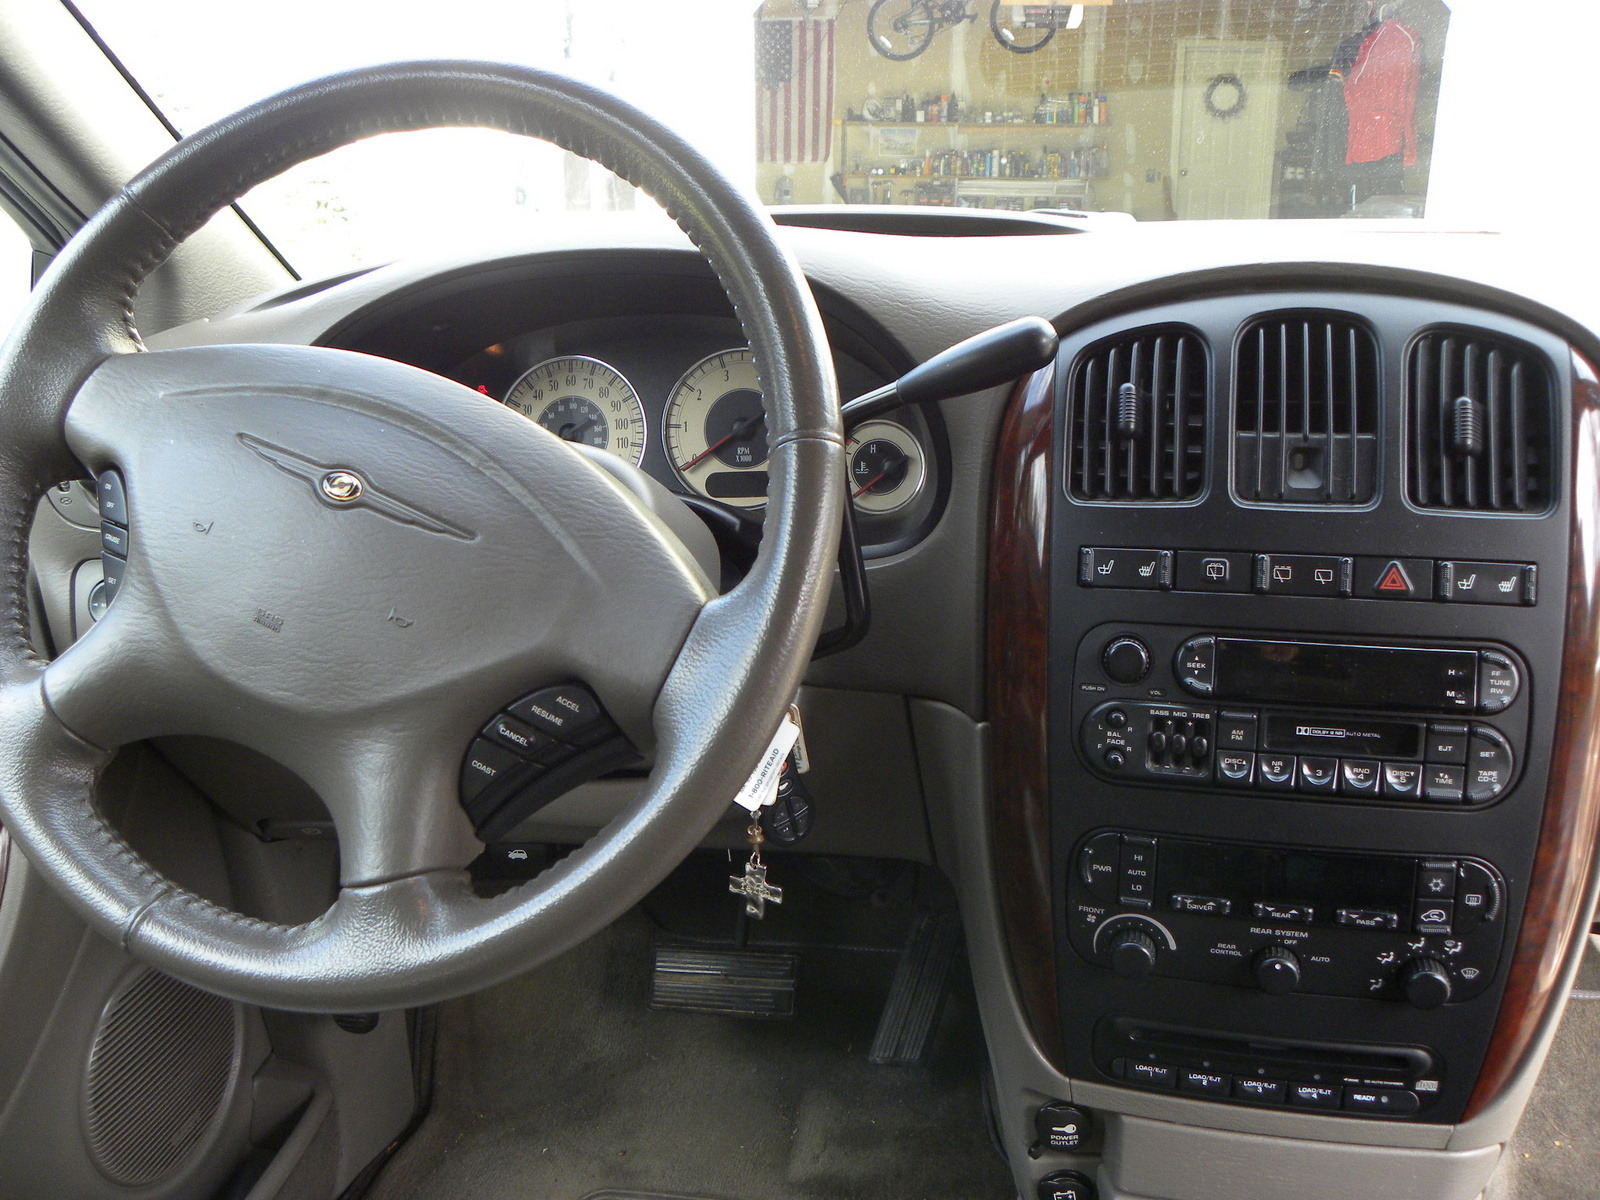 2001 Chrysler Town And Country Interior Pictures To Pin On Pinterest Pinsdaddy